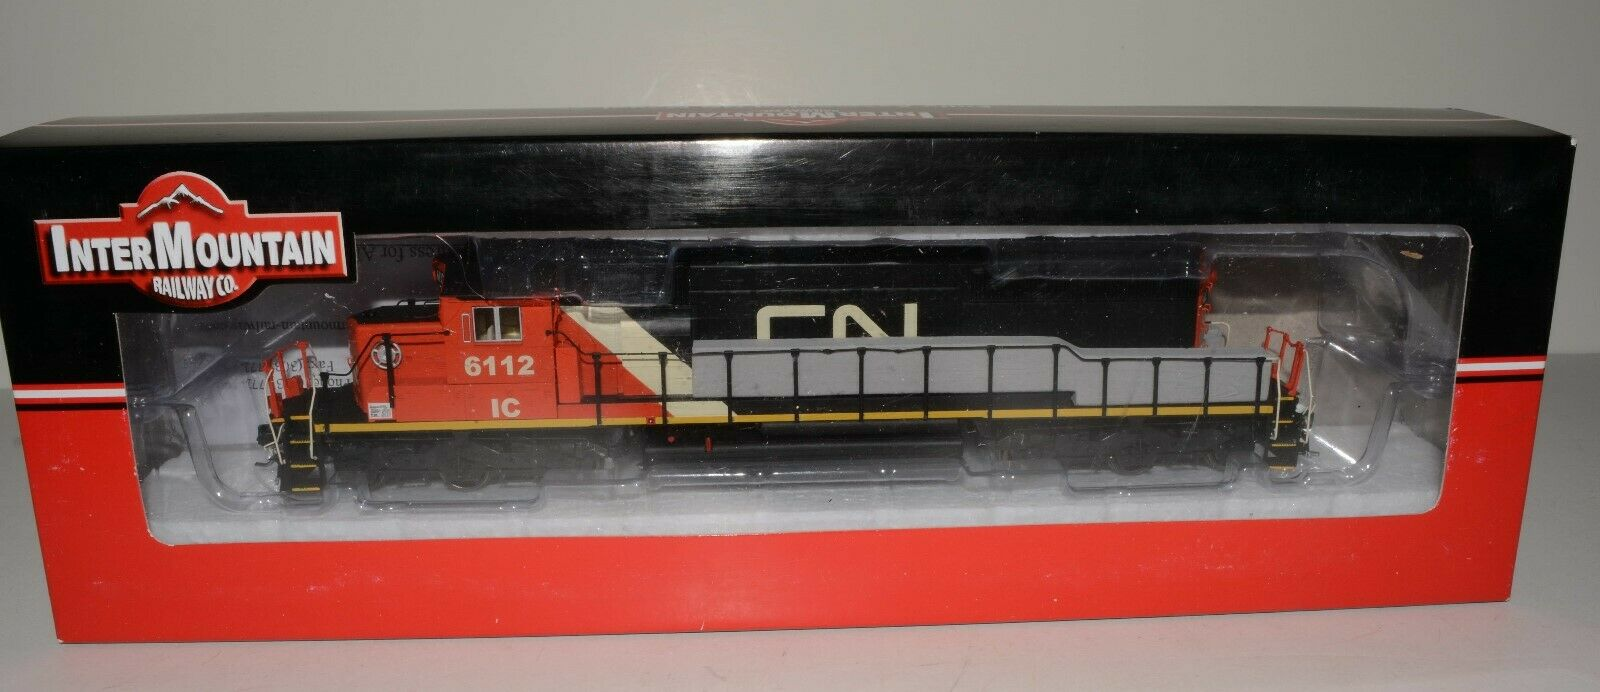 InterMountain DC DCC SOUND SD40-2 Canadian Pacific Illinois Central Lot C